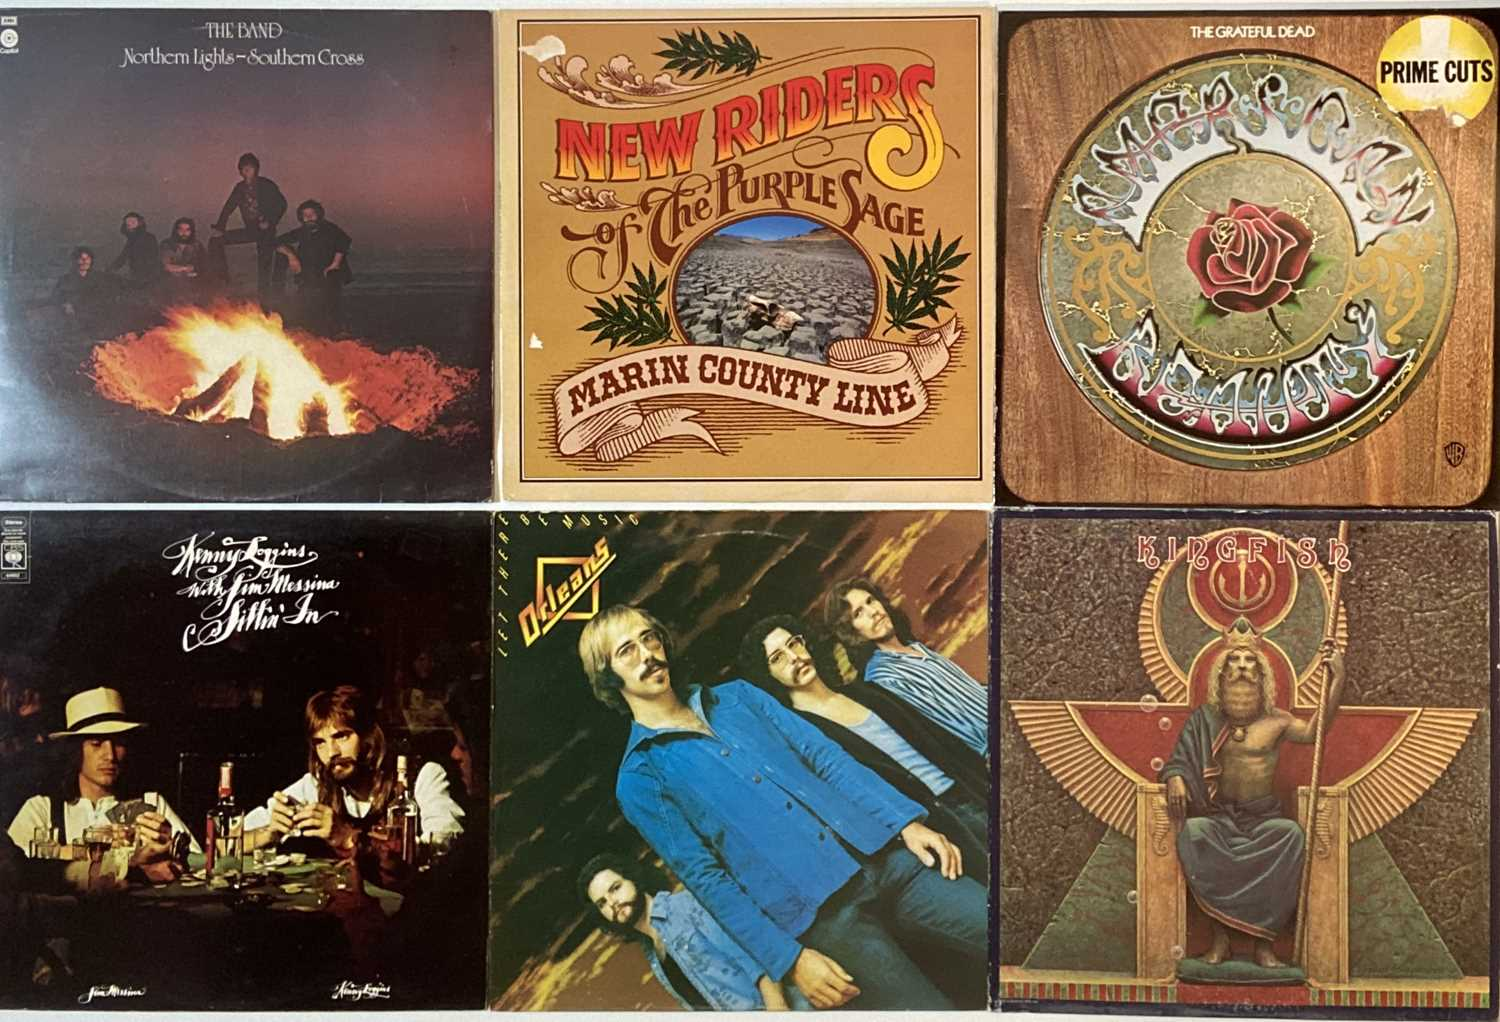 COUNTRY ROCK/R&R/AOR - LPs